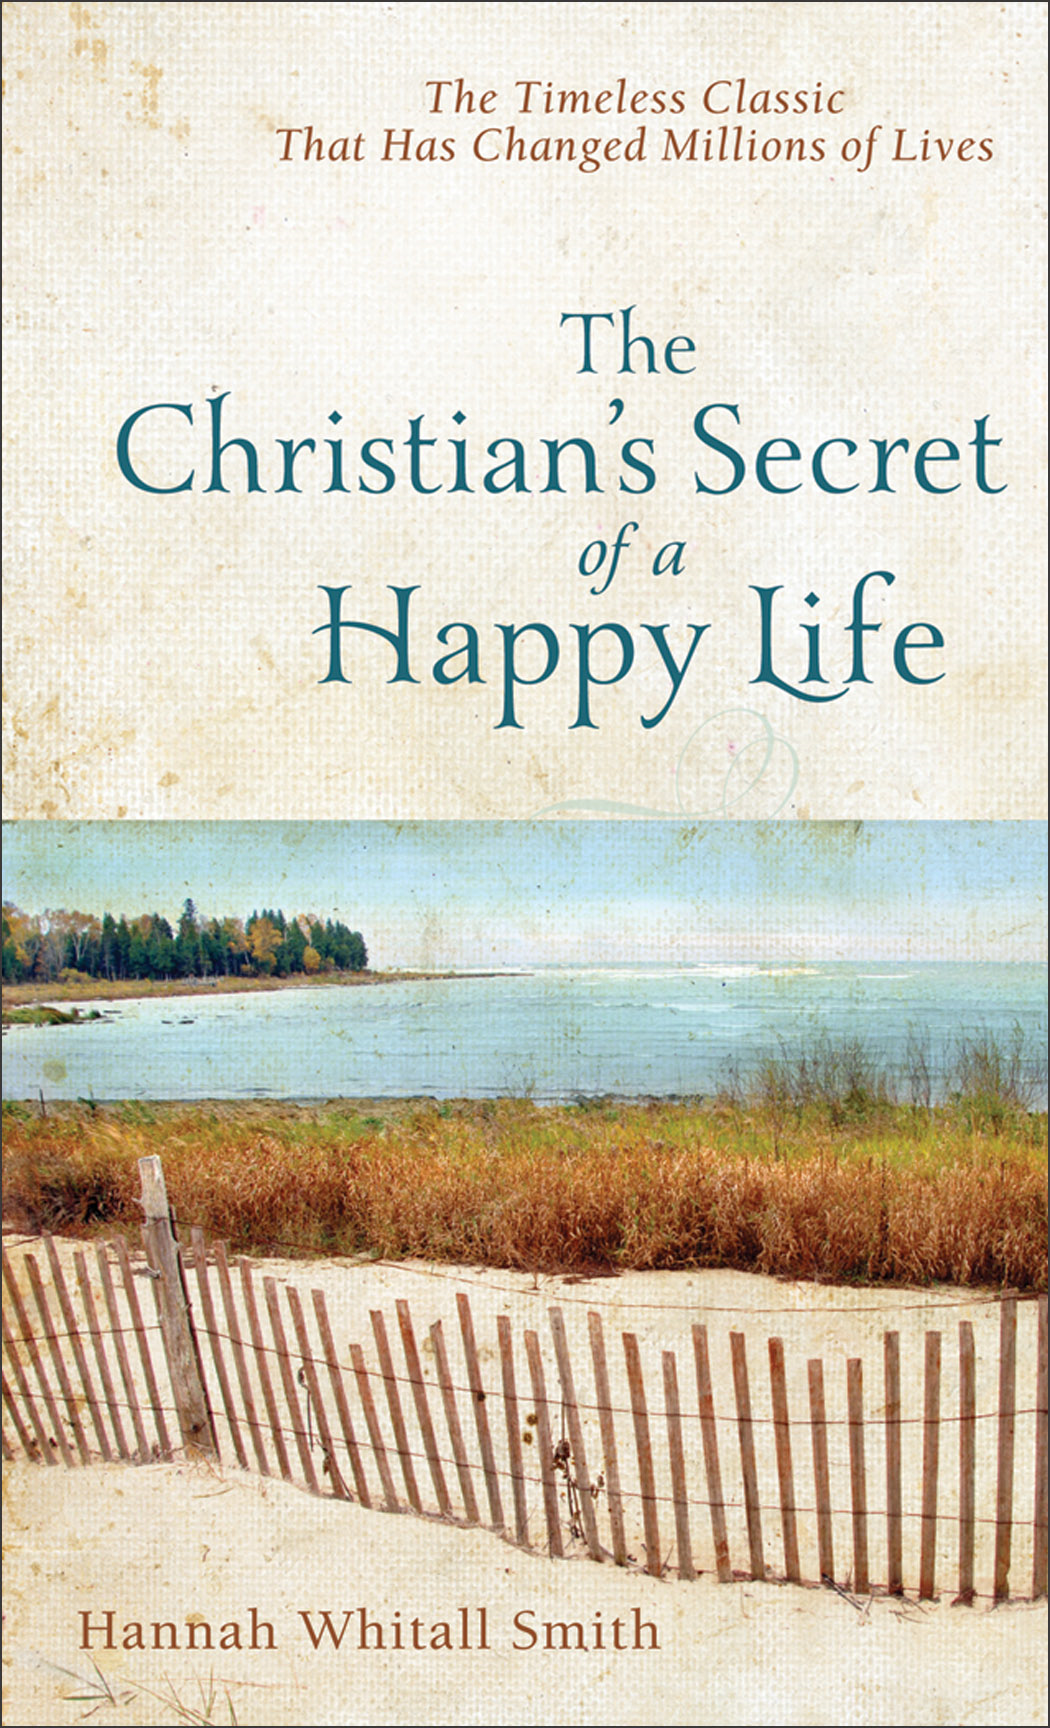 Christian's Secret of a Happy Life, The